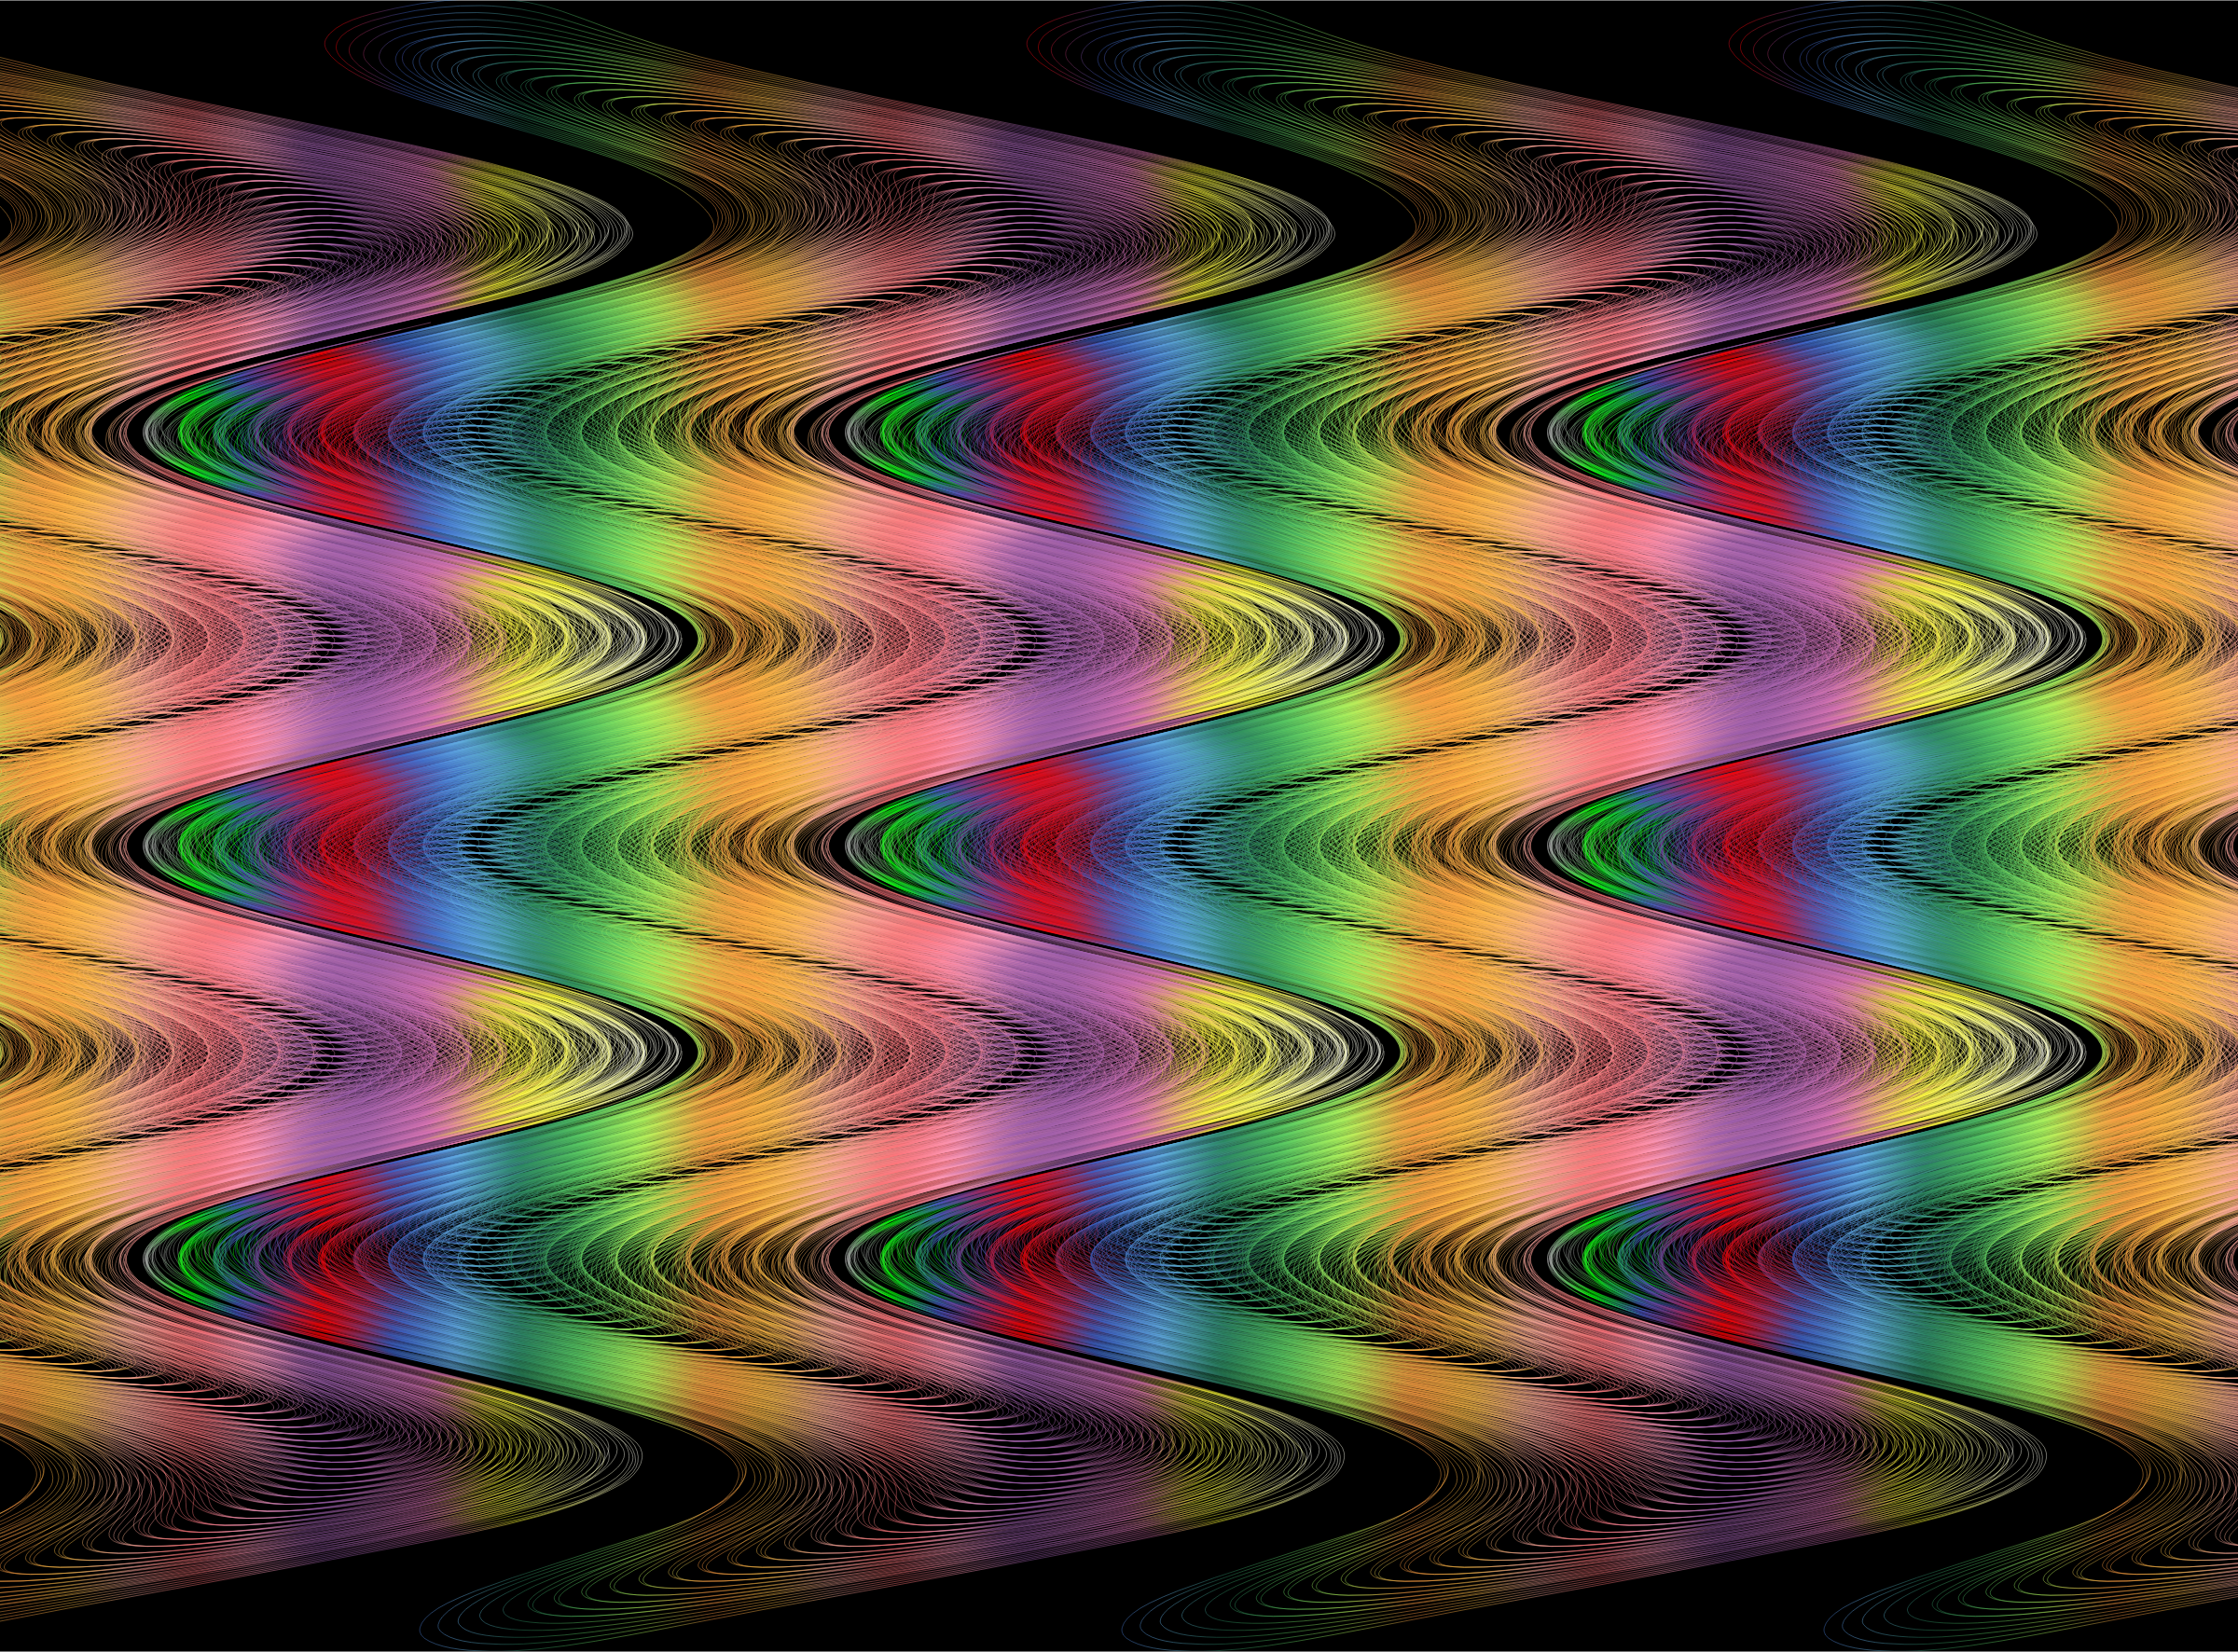 Chromatic Abstract Line Art Background 2 by GDJ